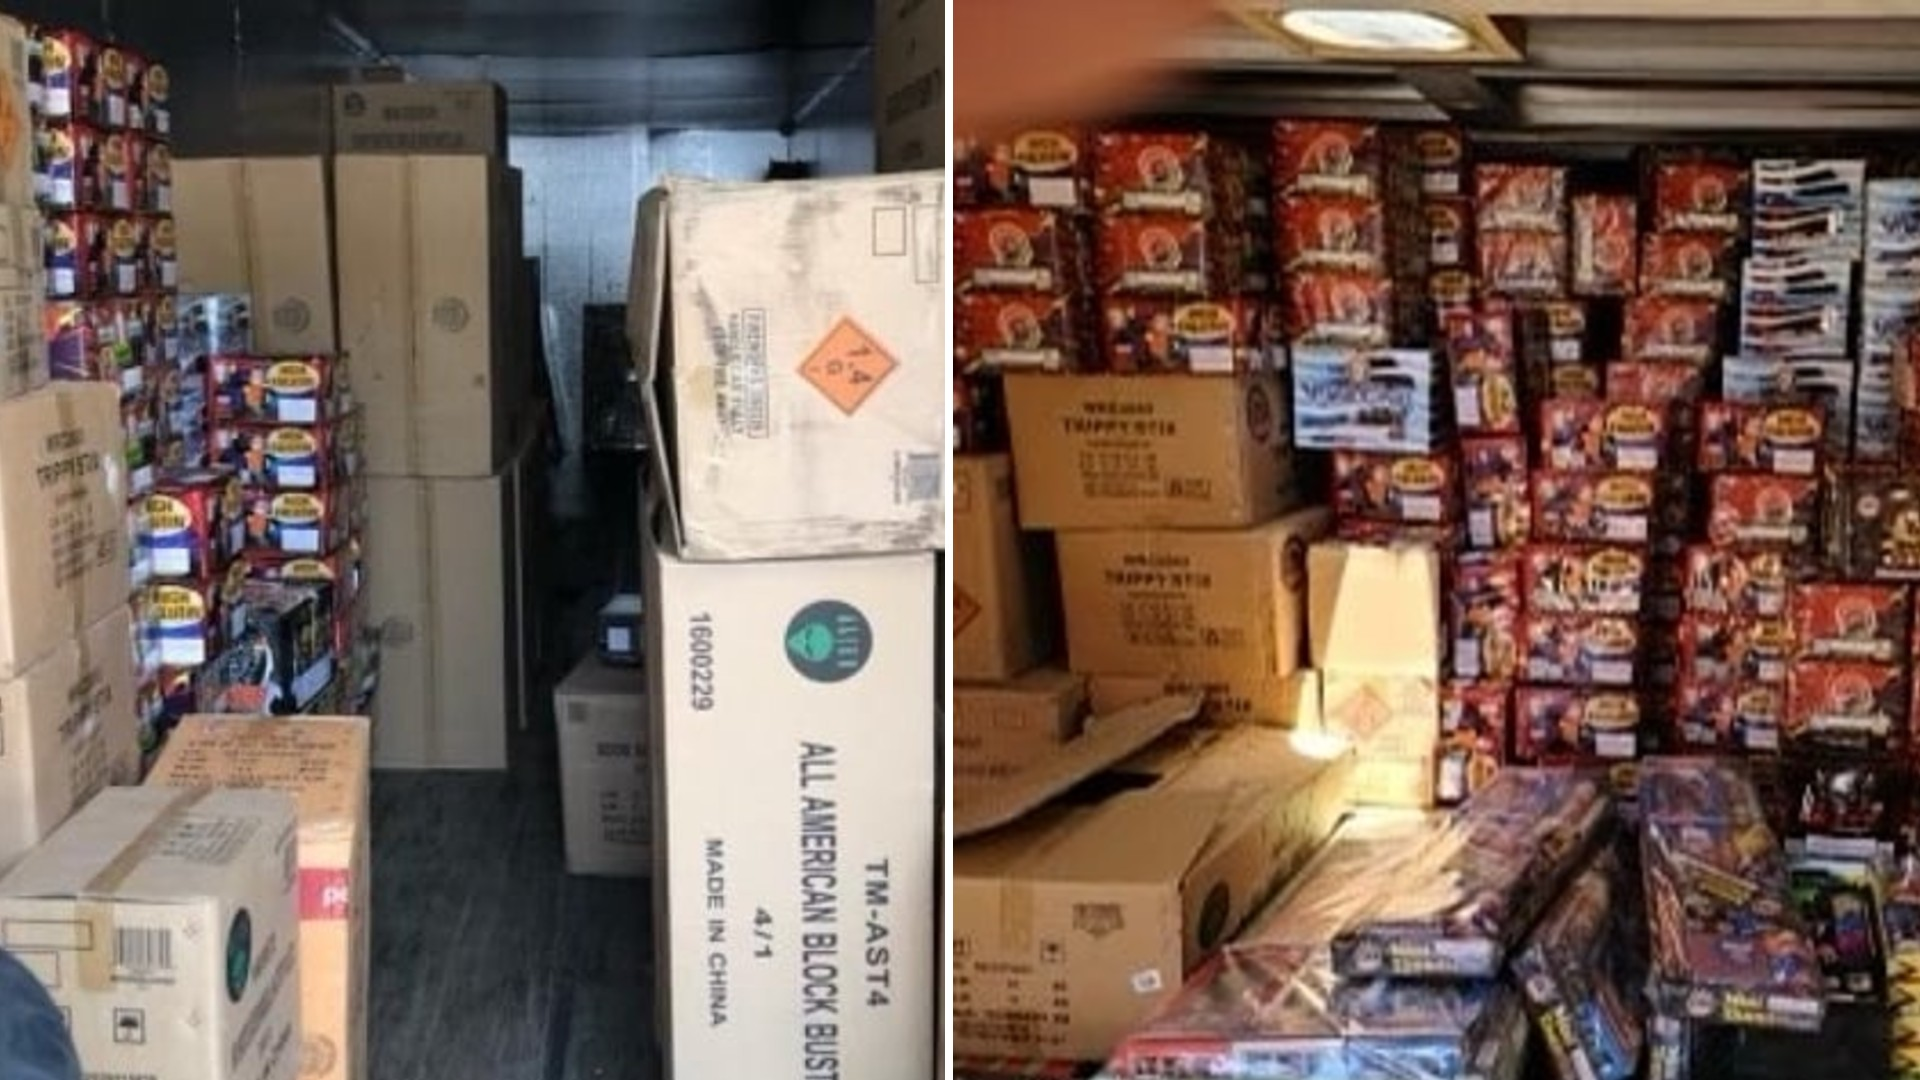 The Los Angeles Police Department shared photos on July 1, 2021, of illegal fireworks seized from a shipping container in downtown L.A.